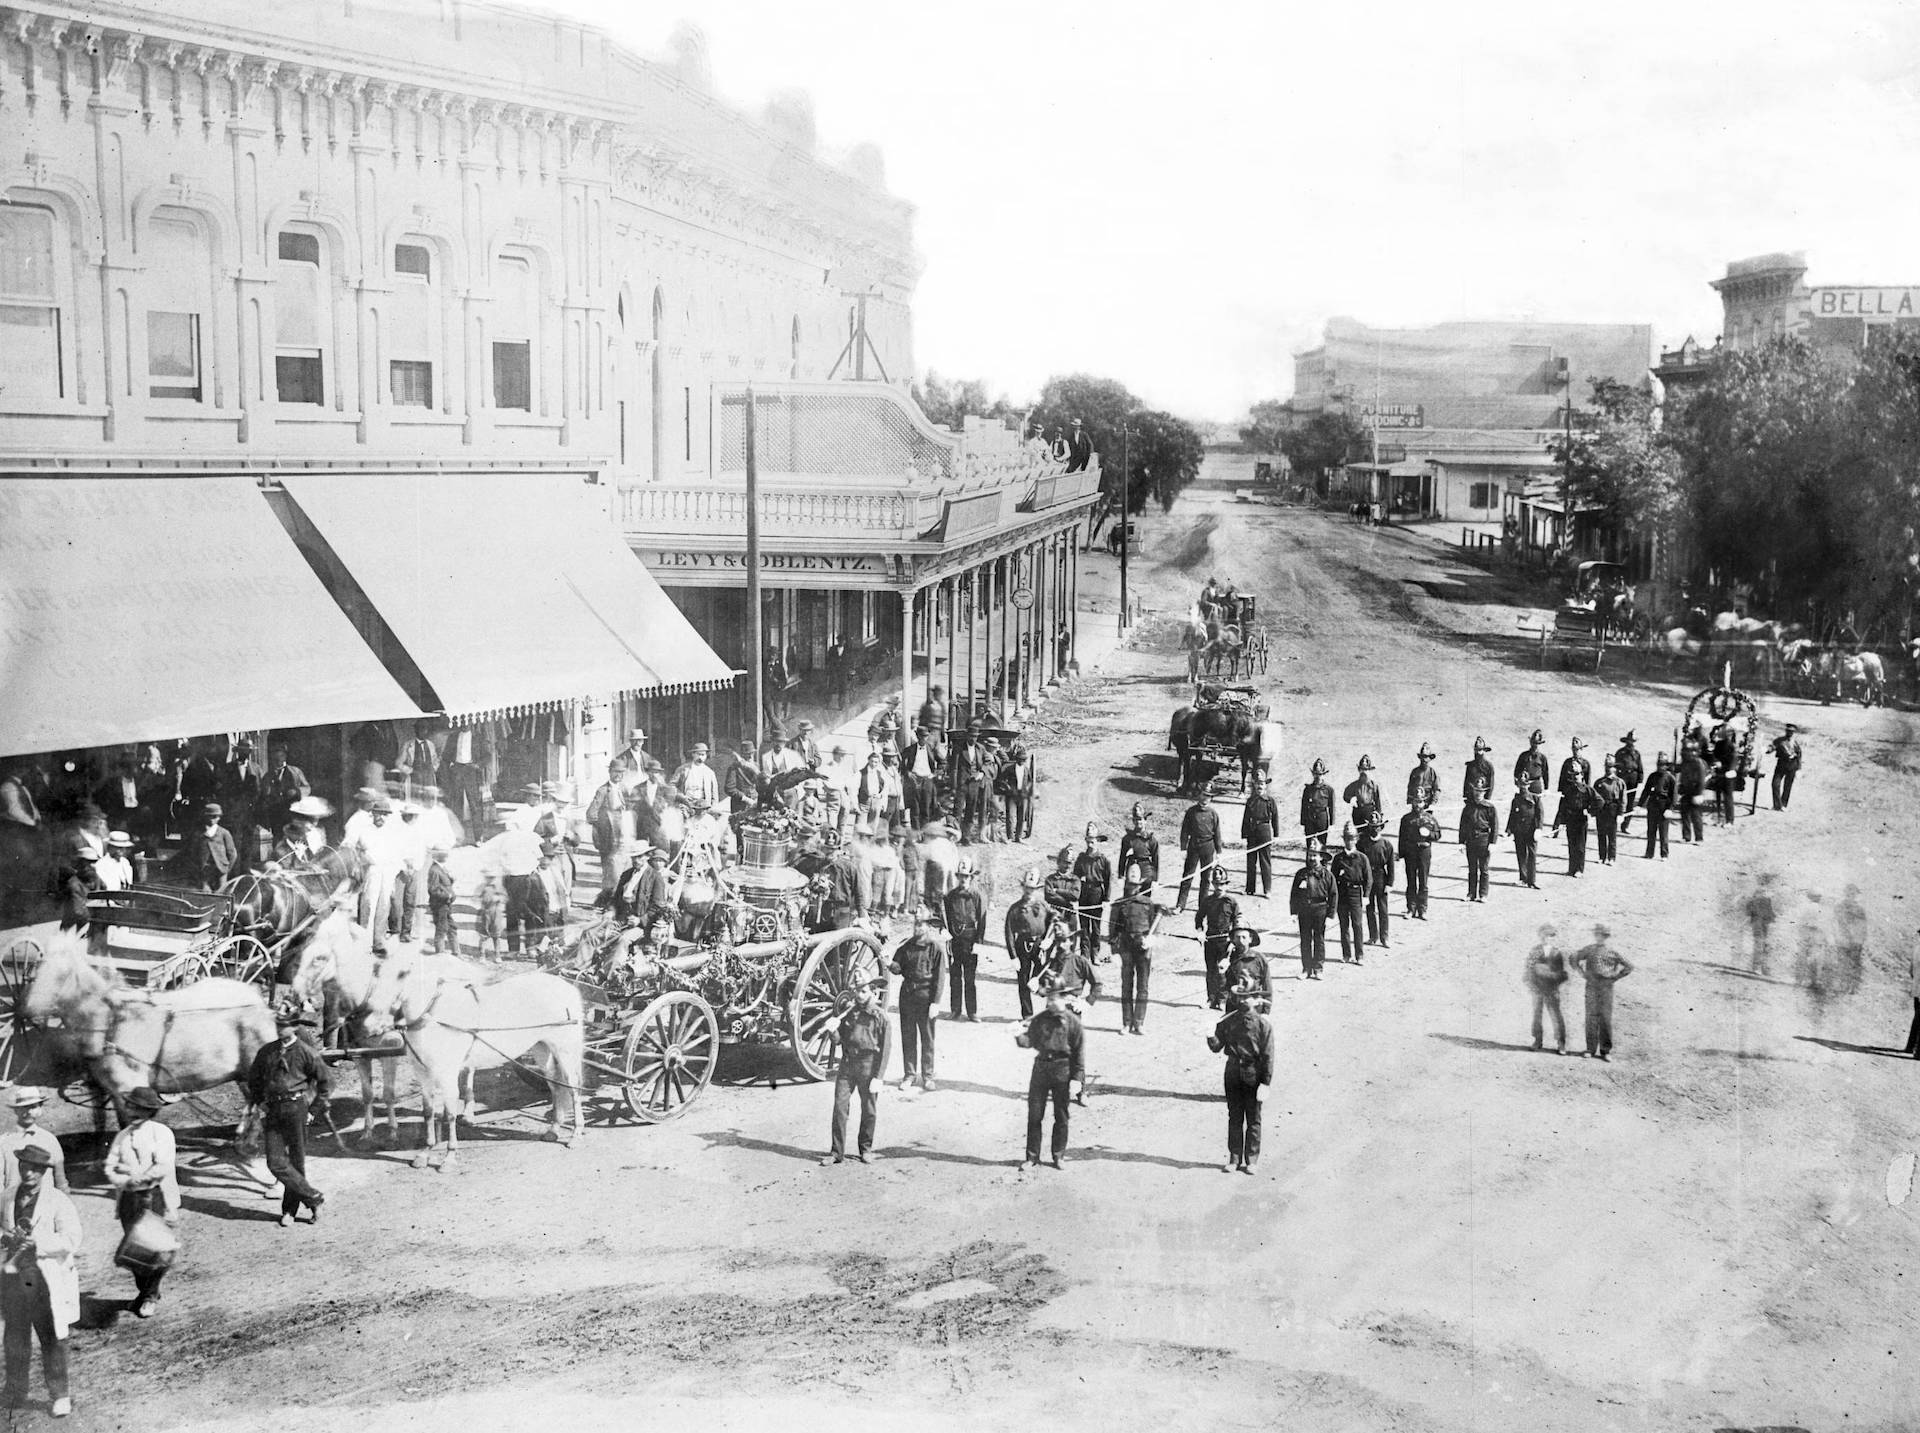 Los Angeles Fourth of July Parade down Main Street, 1871